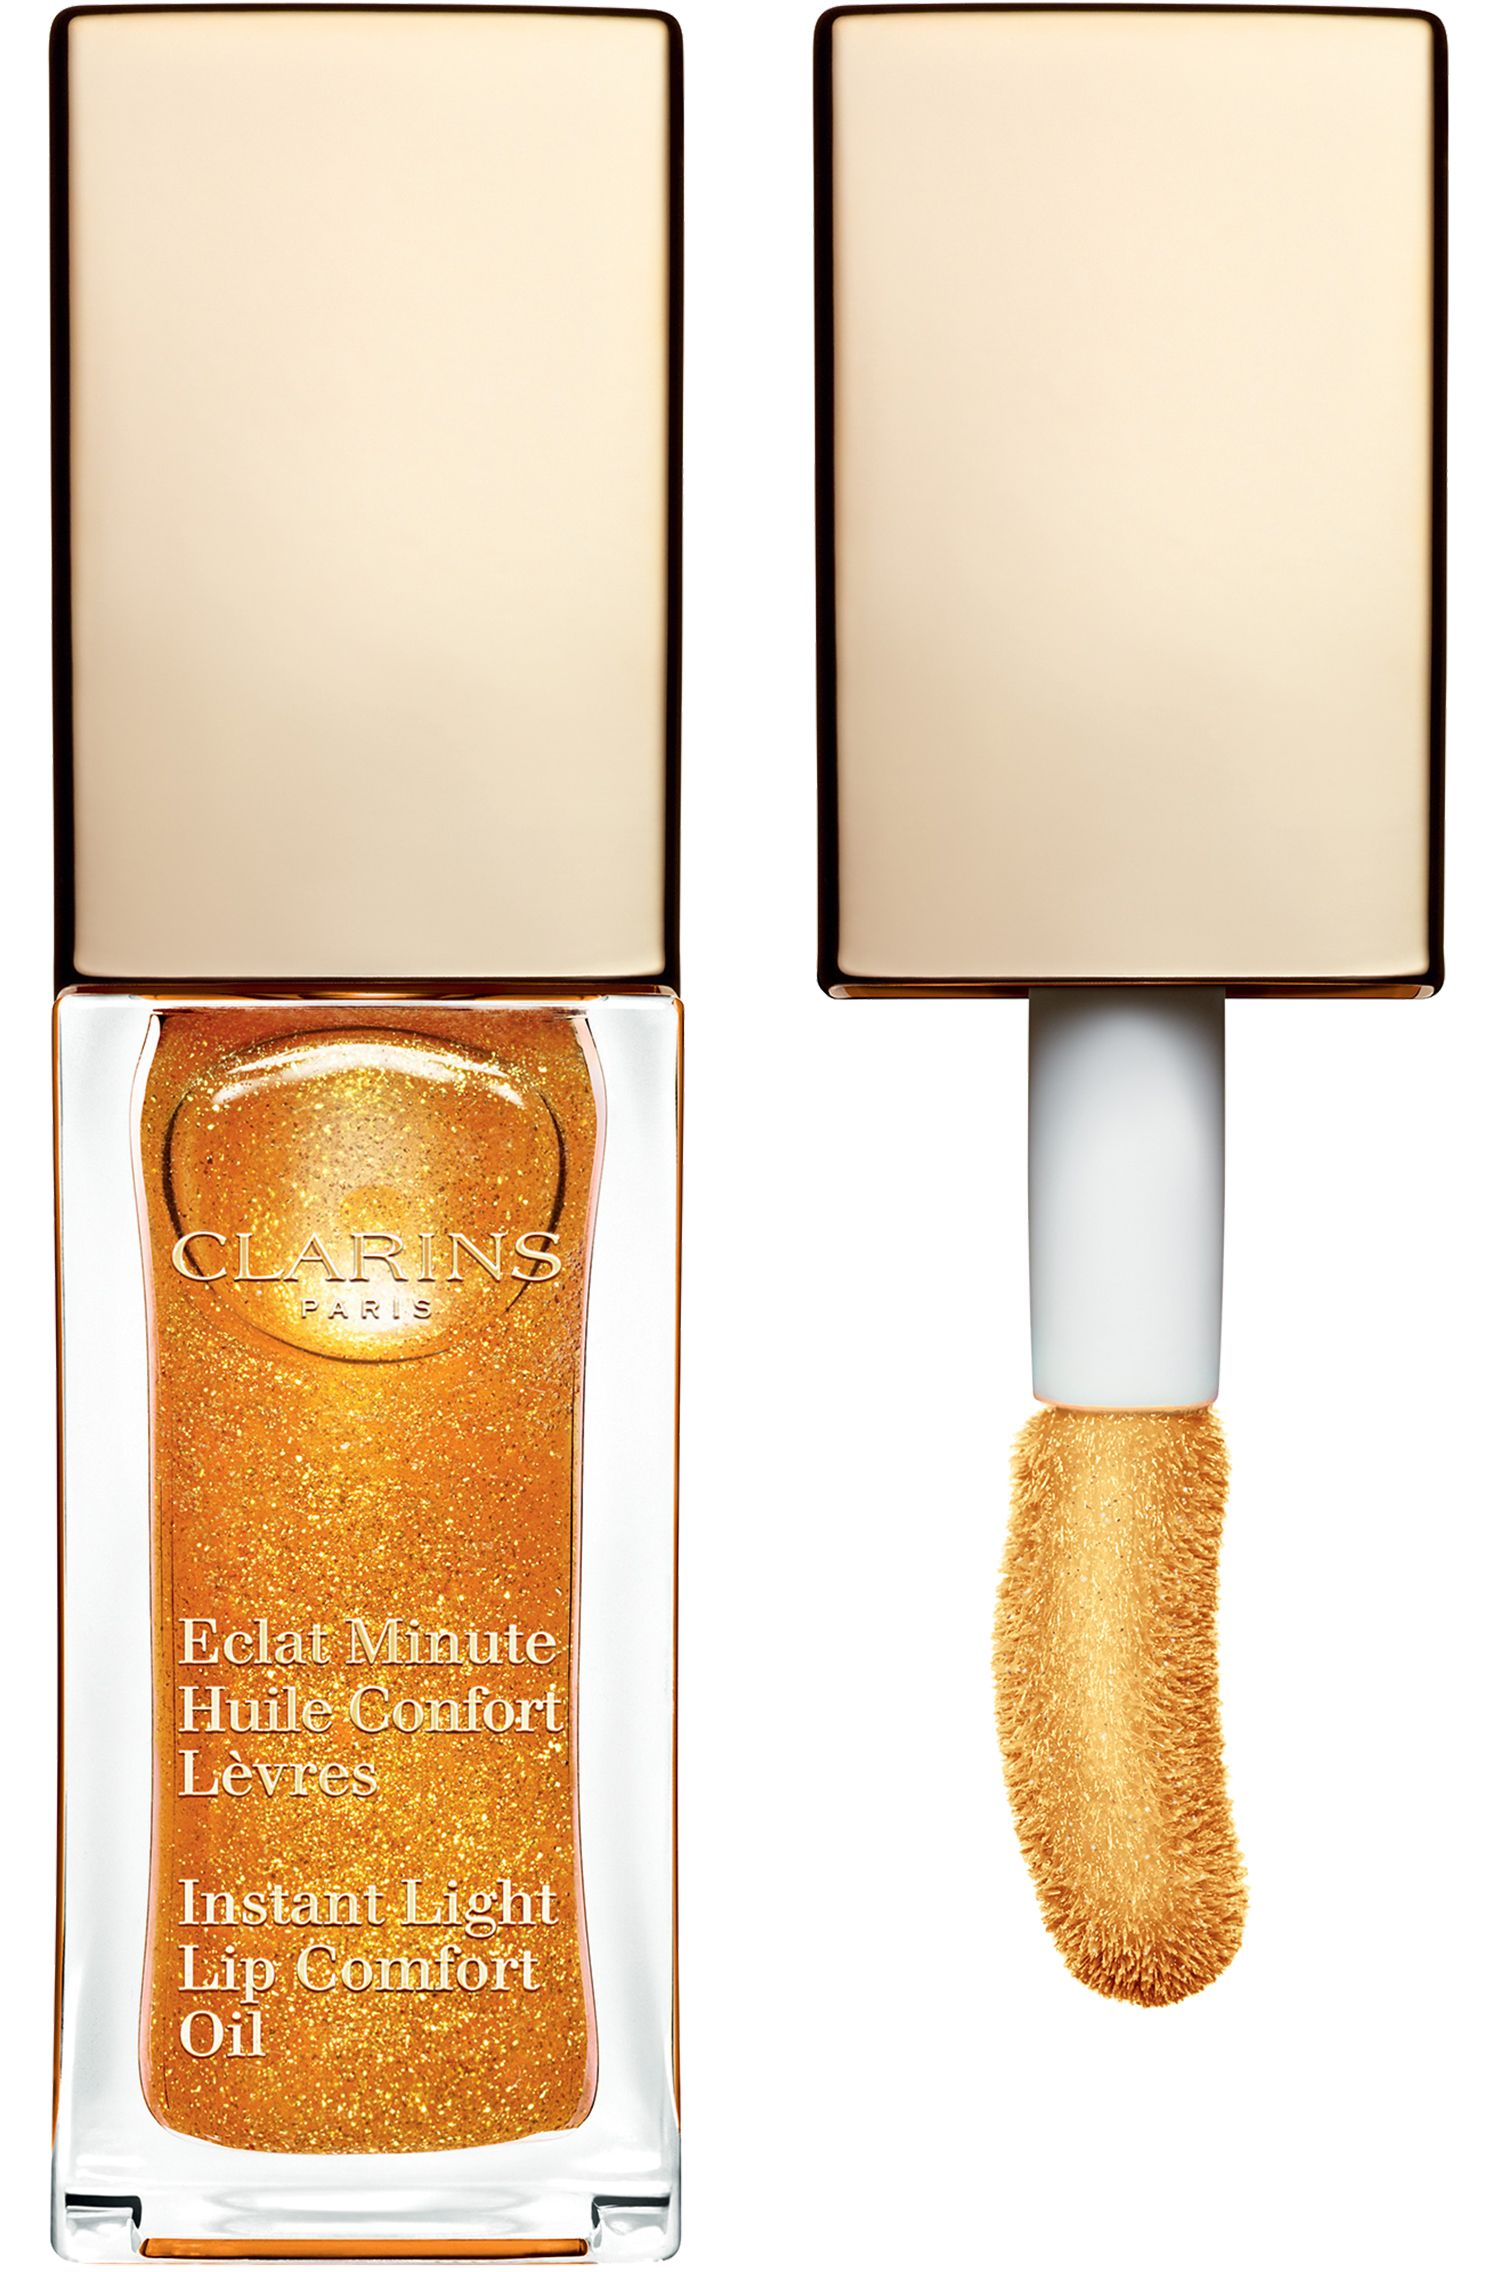 Blissim : Clarins - Huile confort lèvres Eclat Minute - 07-Honey Glam